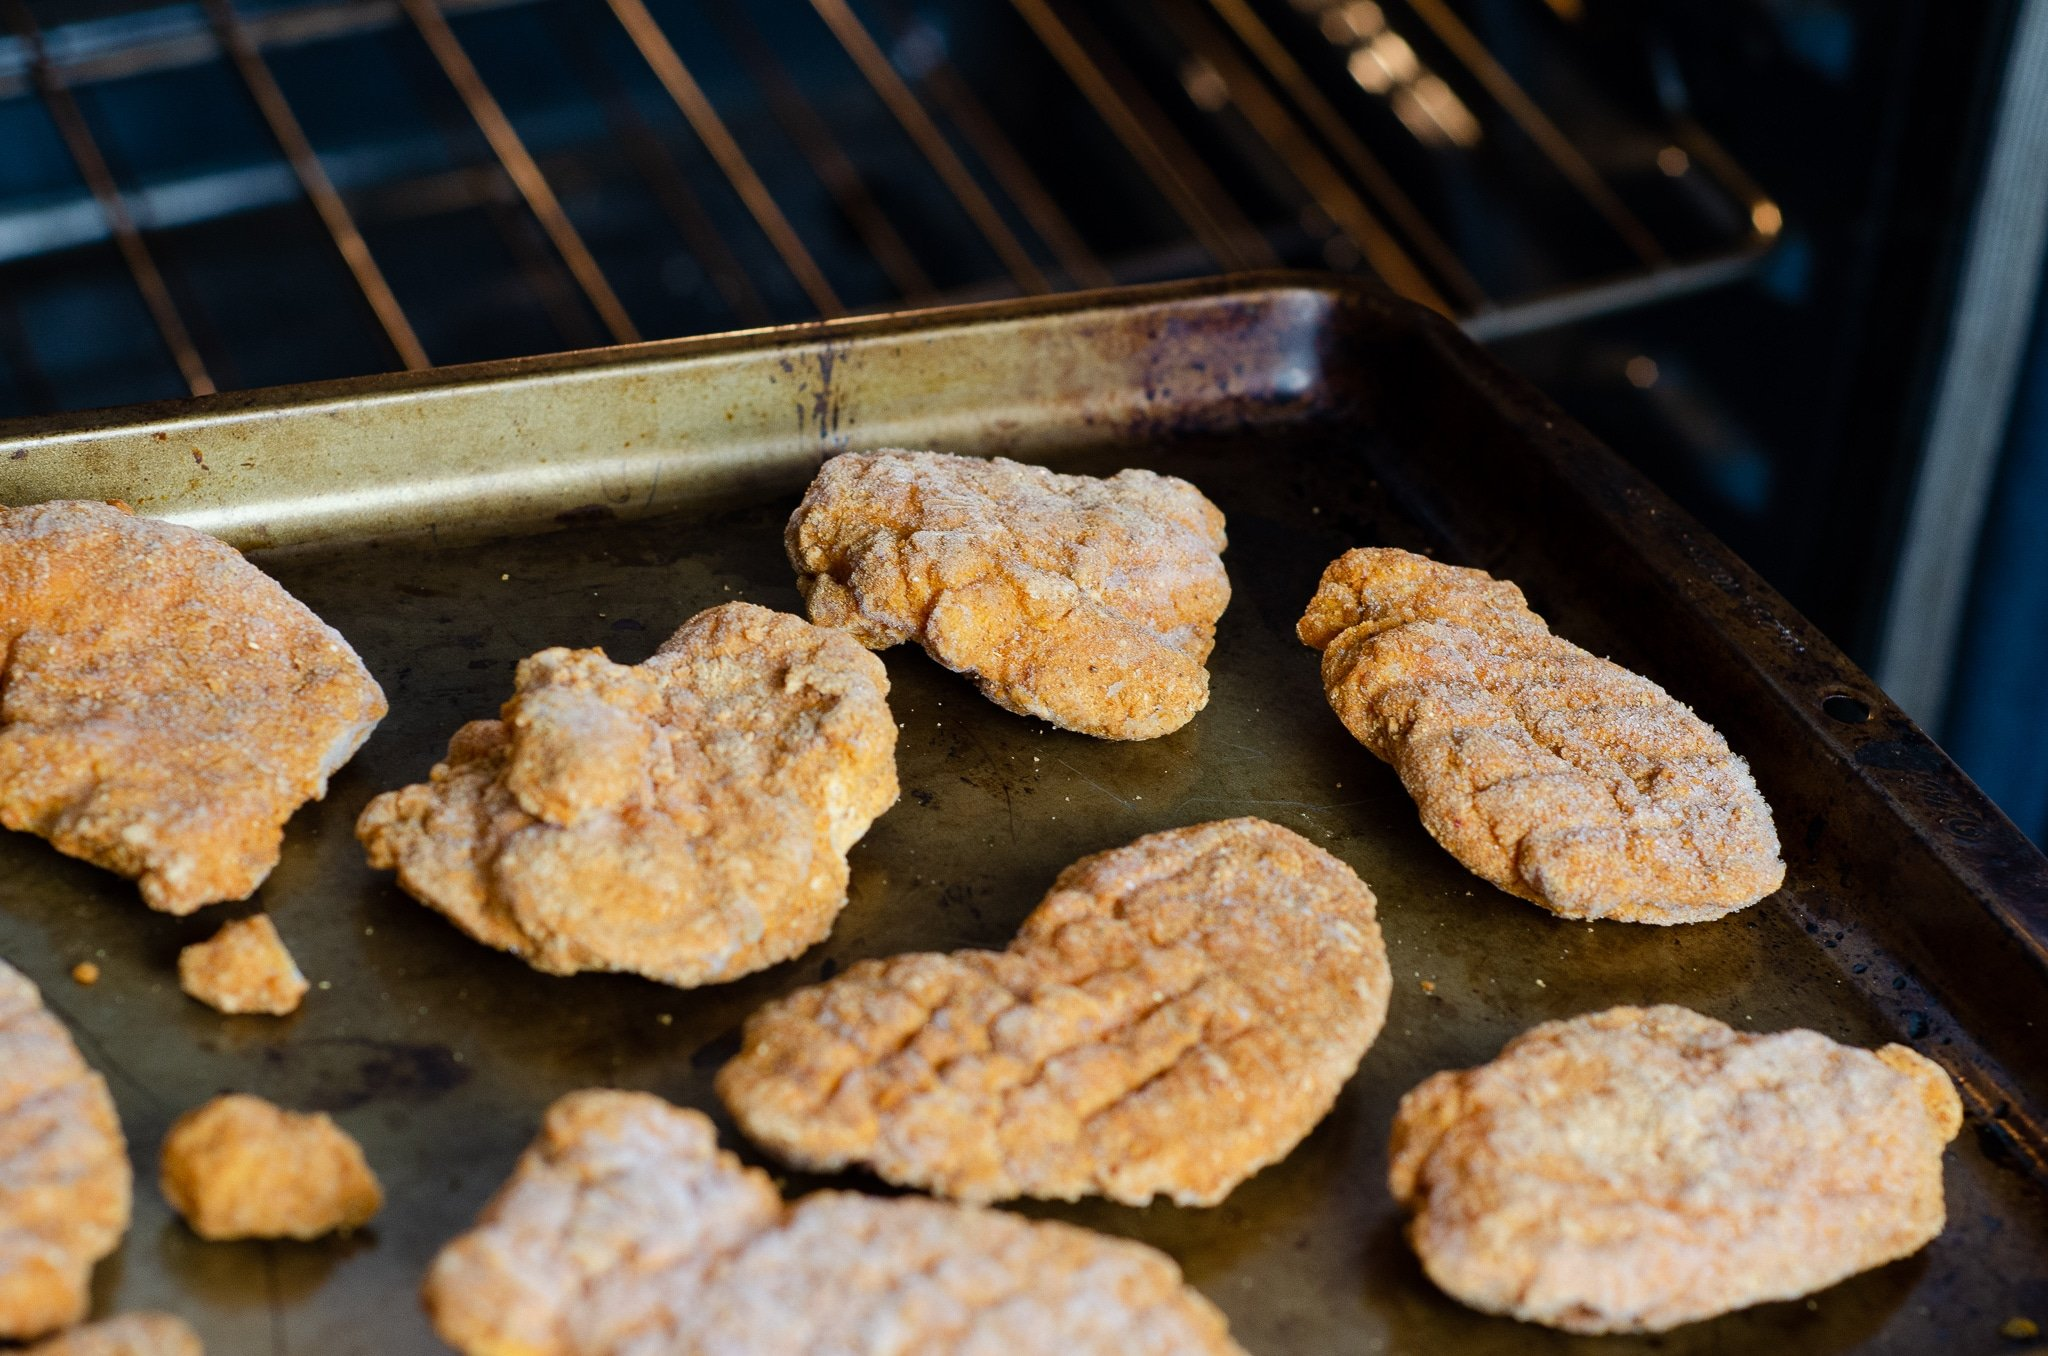 CAULIPOWER Chicken Tenders in Oven. CAULIPOWER's game-changing frozen chicken tenders start with high-quality chicken breast meat, coated with cauliflower and other gluten-free goodness, and then they are BAKED (not fried).